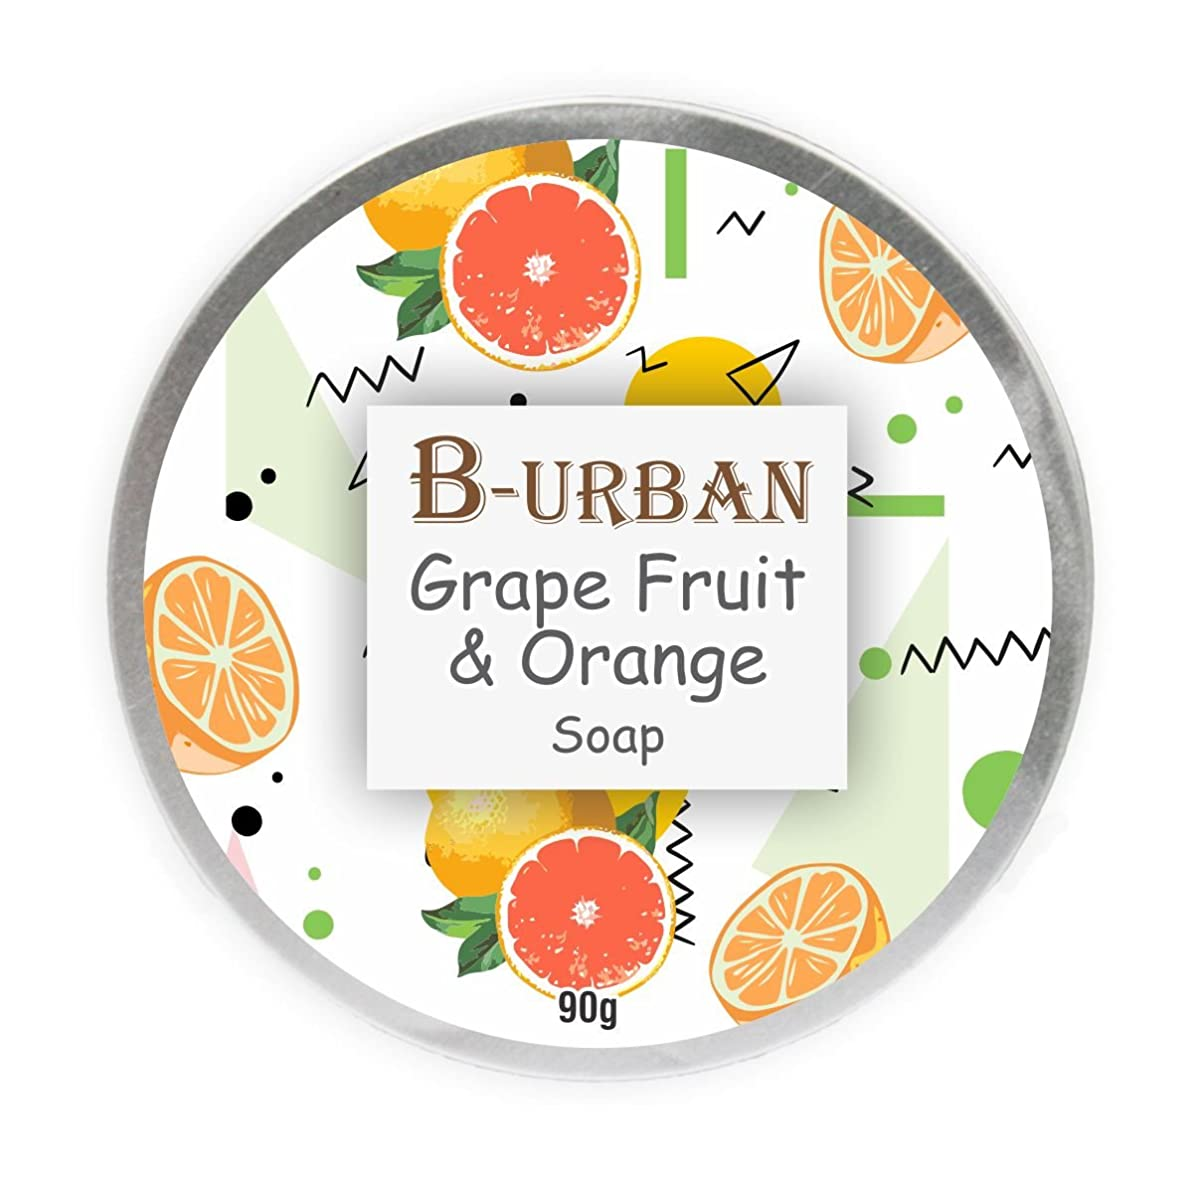 取り除くコモランマ万歳B-Urban Grape Fruit And Orange Soap Made With Natural And Organic Ingredients. Paraben And Sulphate Free. Anti Aging Soap.Comes In A Unique Aluminium Box